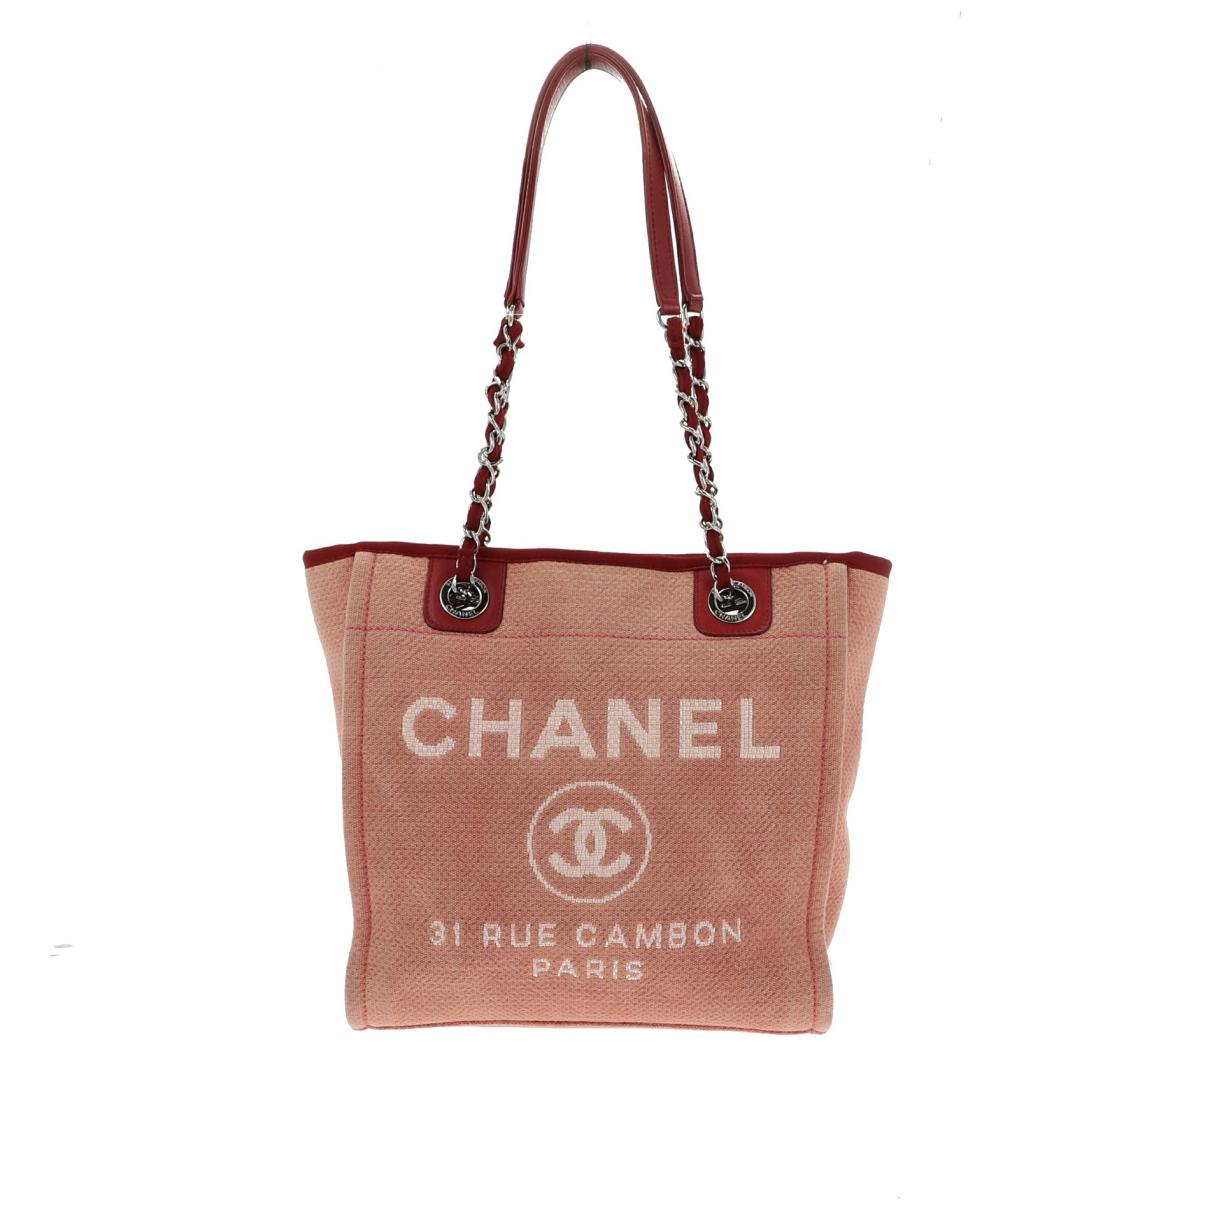 102093fe82ad Lyst - Chanel Deauville Cloth Handbag in Red